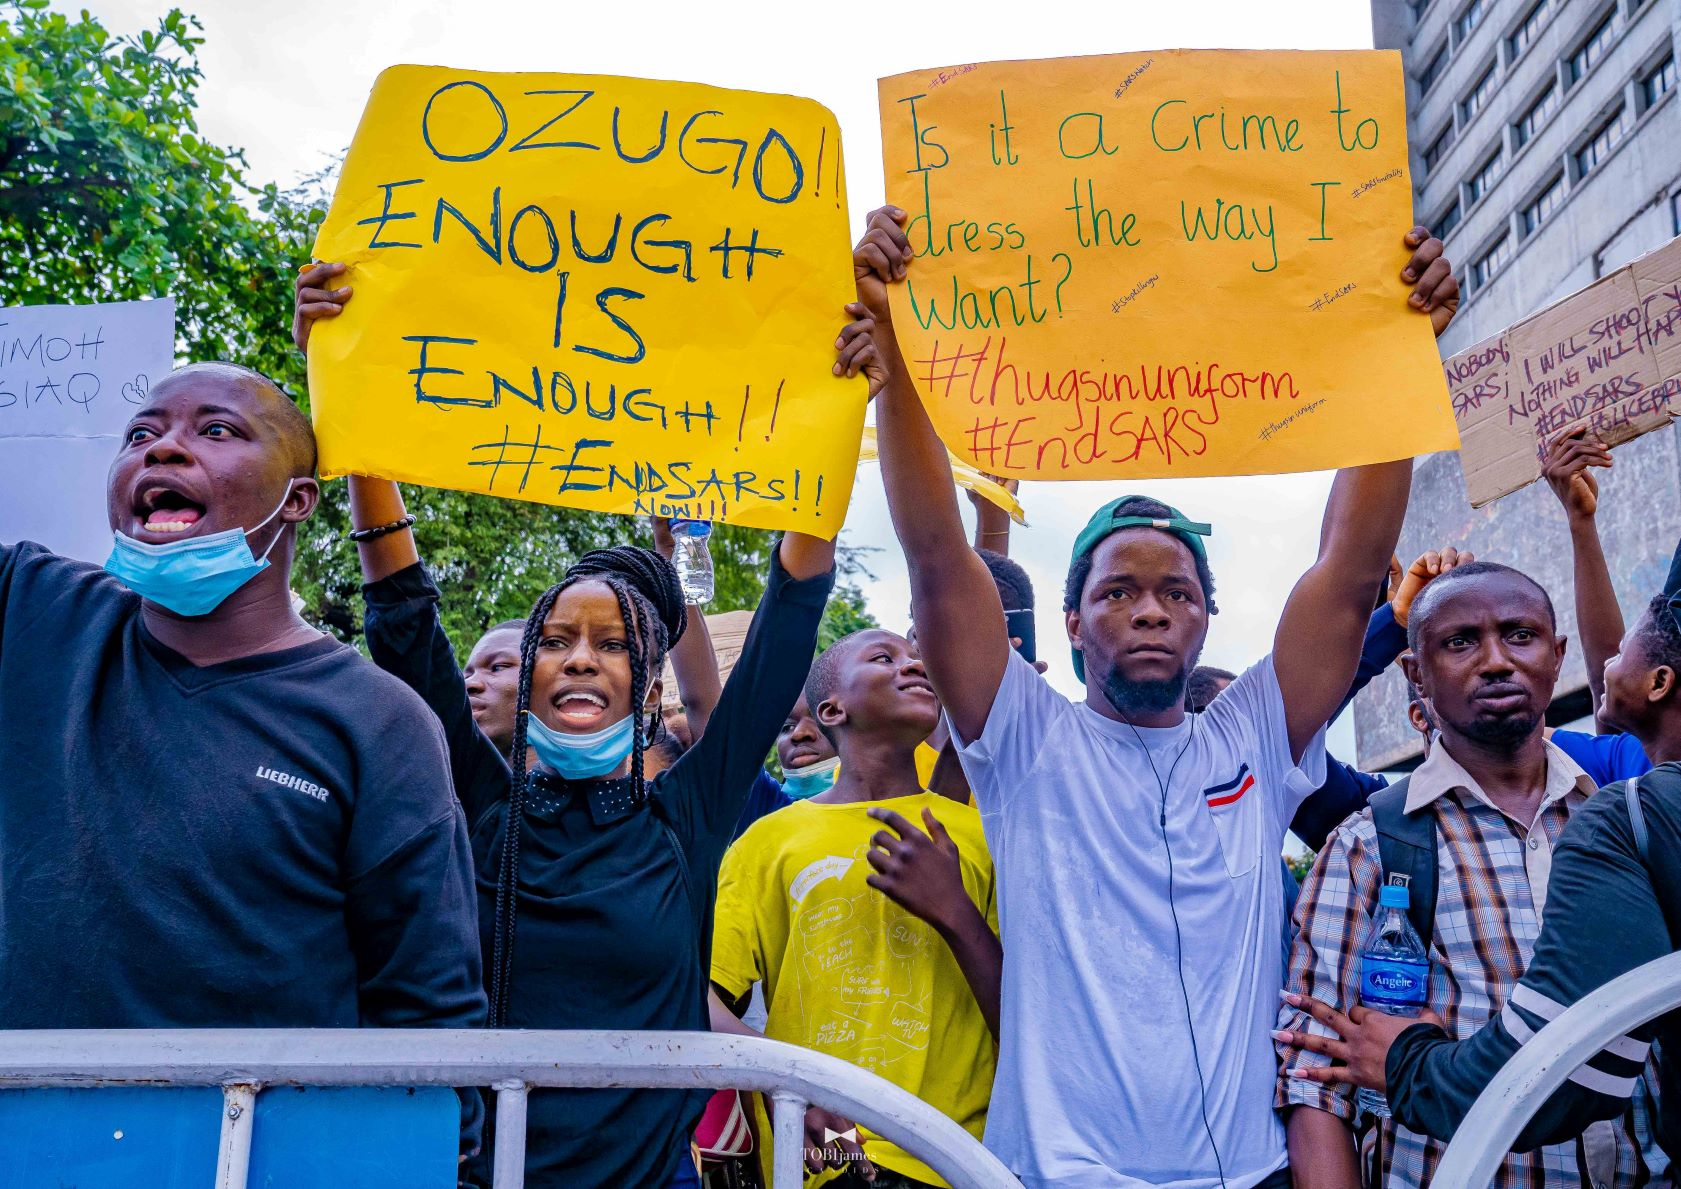 Nigeria #EndSARS protests more broadly politicised but low in list of risks